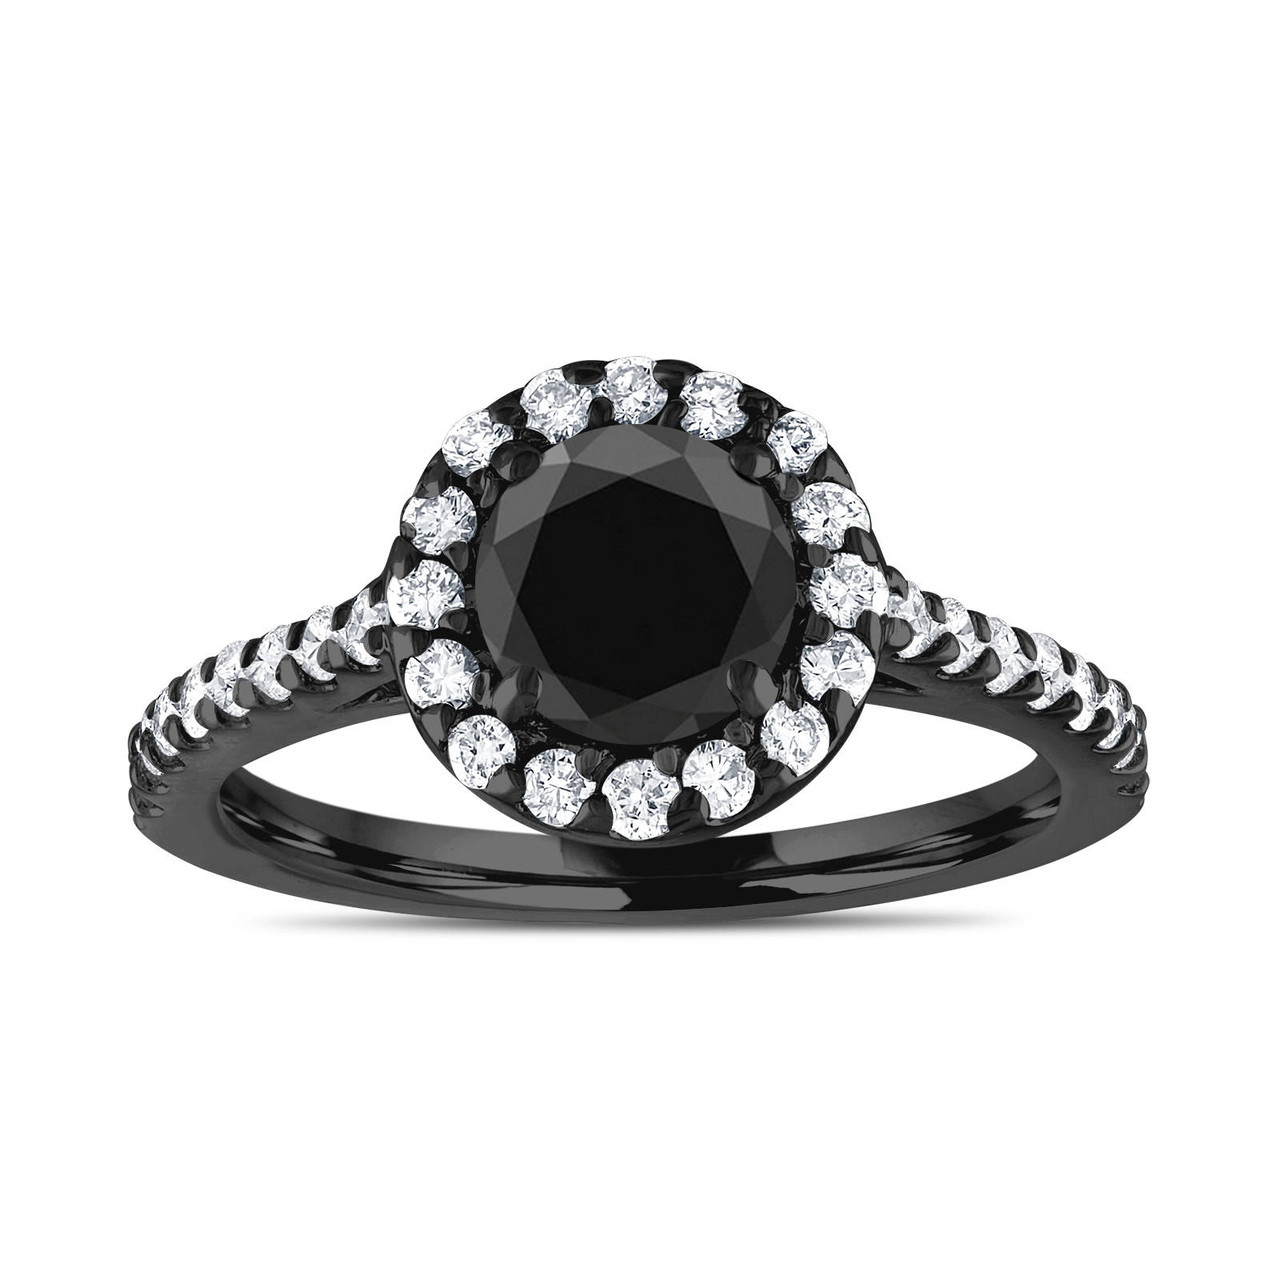 0be1e7dcd58d3 Vintage Halo Engagement Ring, Black Diamond Bridal Ring, 18K Black Gold  Anniversary Ring, 1.59 Carat Unique Pave Certified Handmade